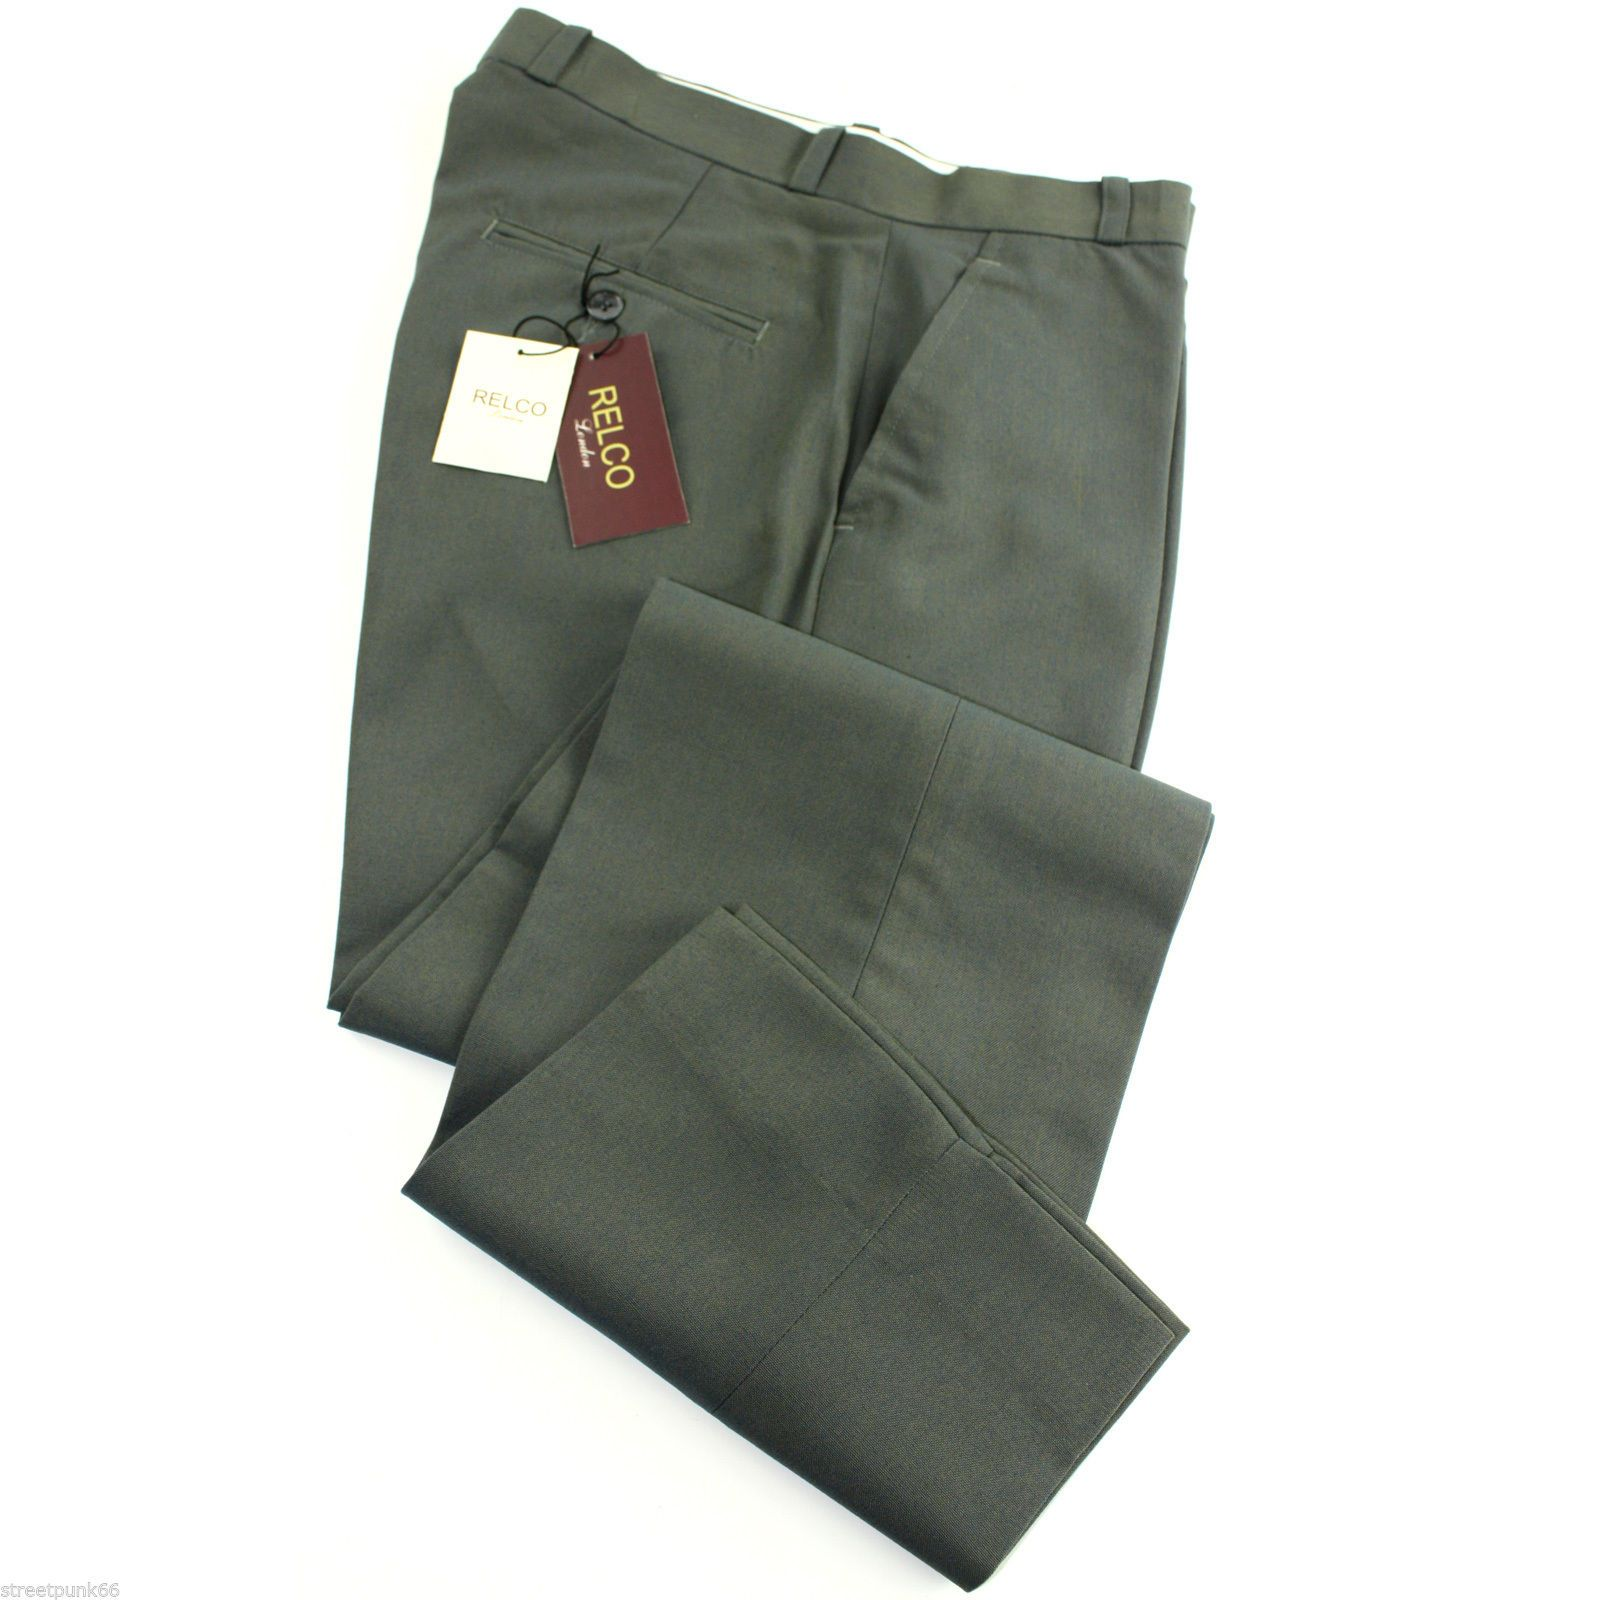 Relco Mens Stay Press Green Tonic Trousers Two Tone Sta ...